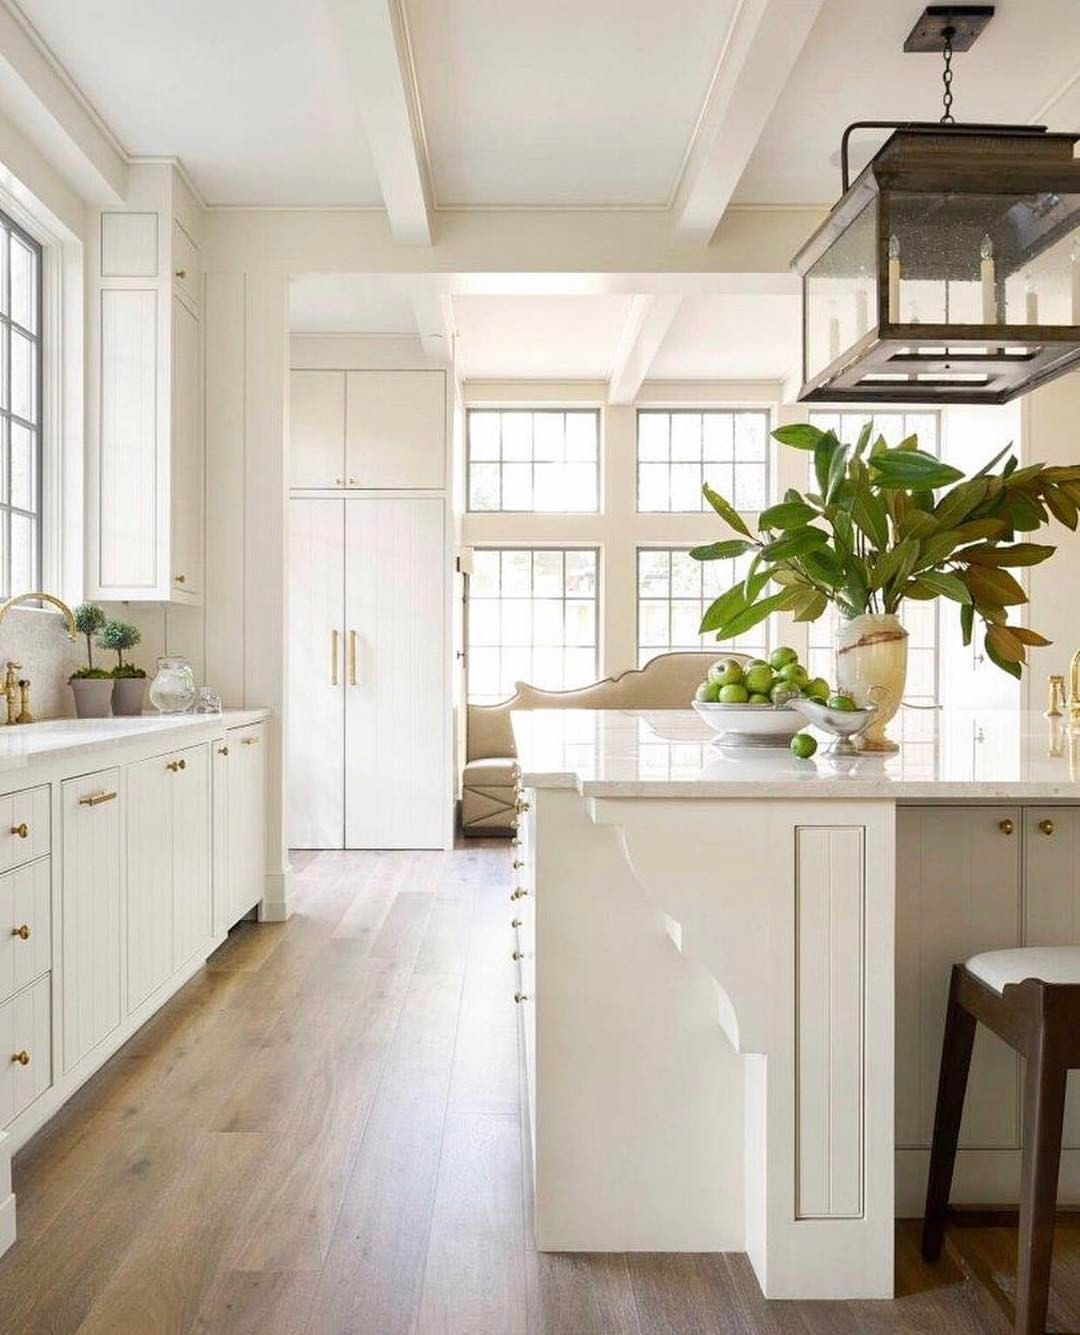 Dream Kitchen Must Have Design Ideas: Pin By Bethany Sanderson On Everyday Home